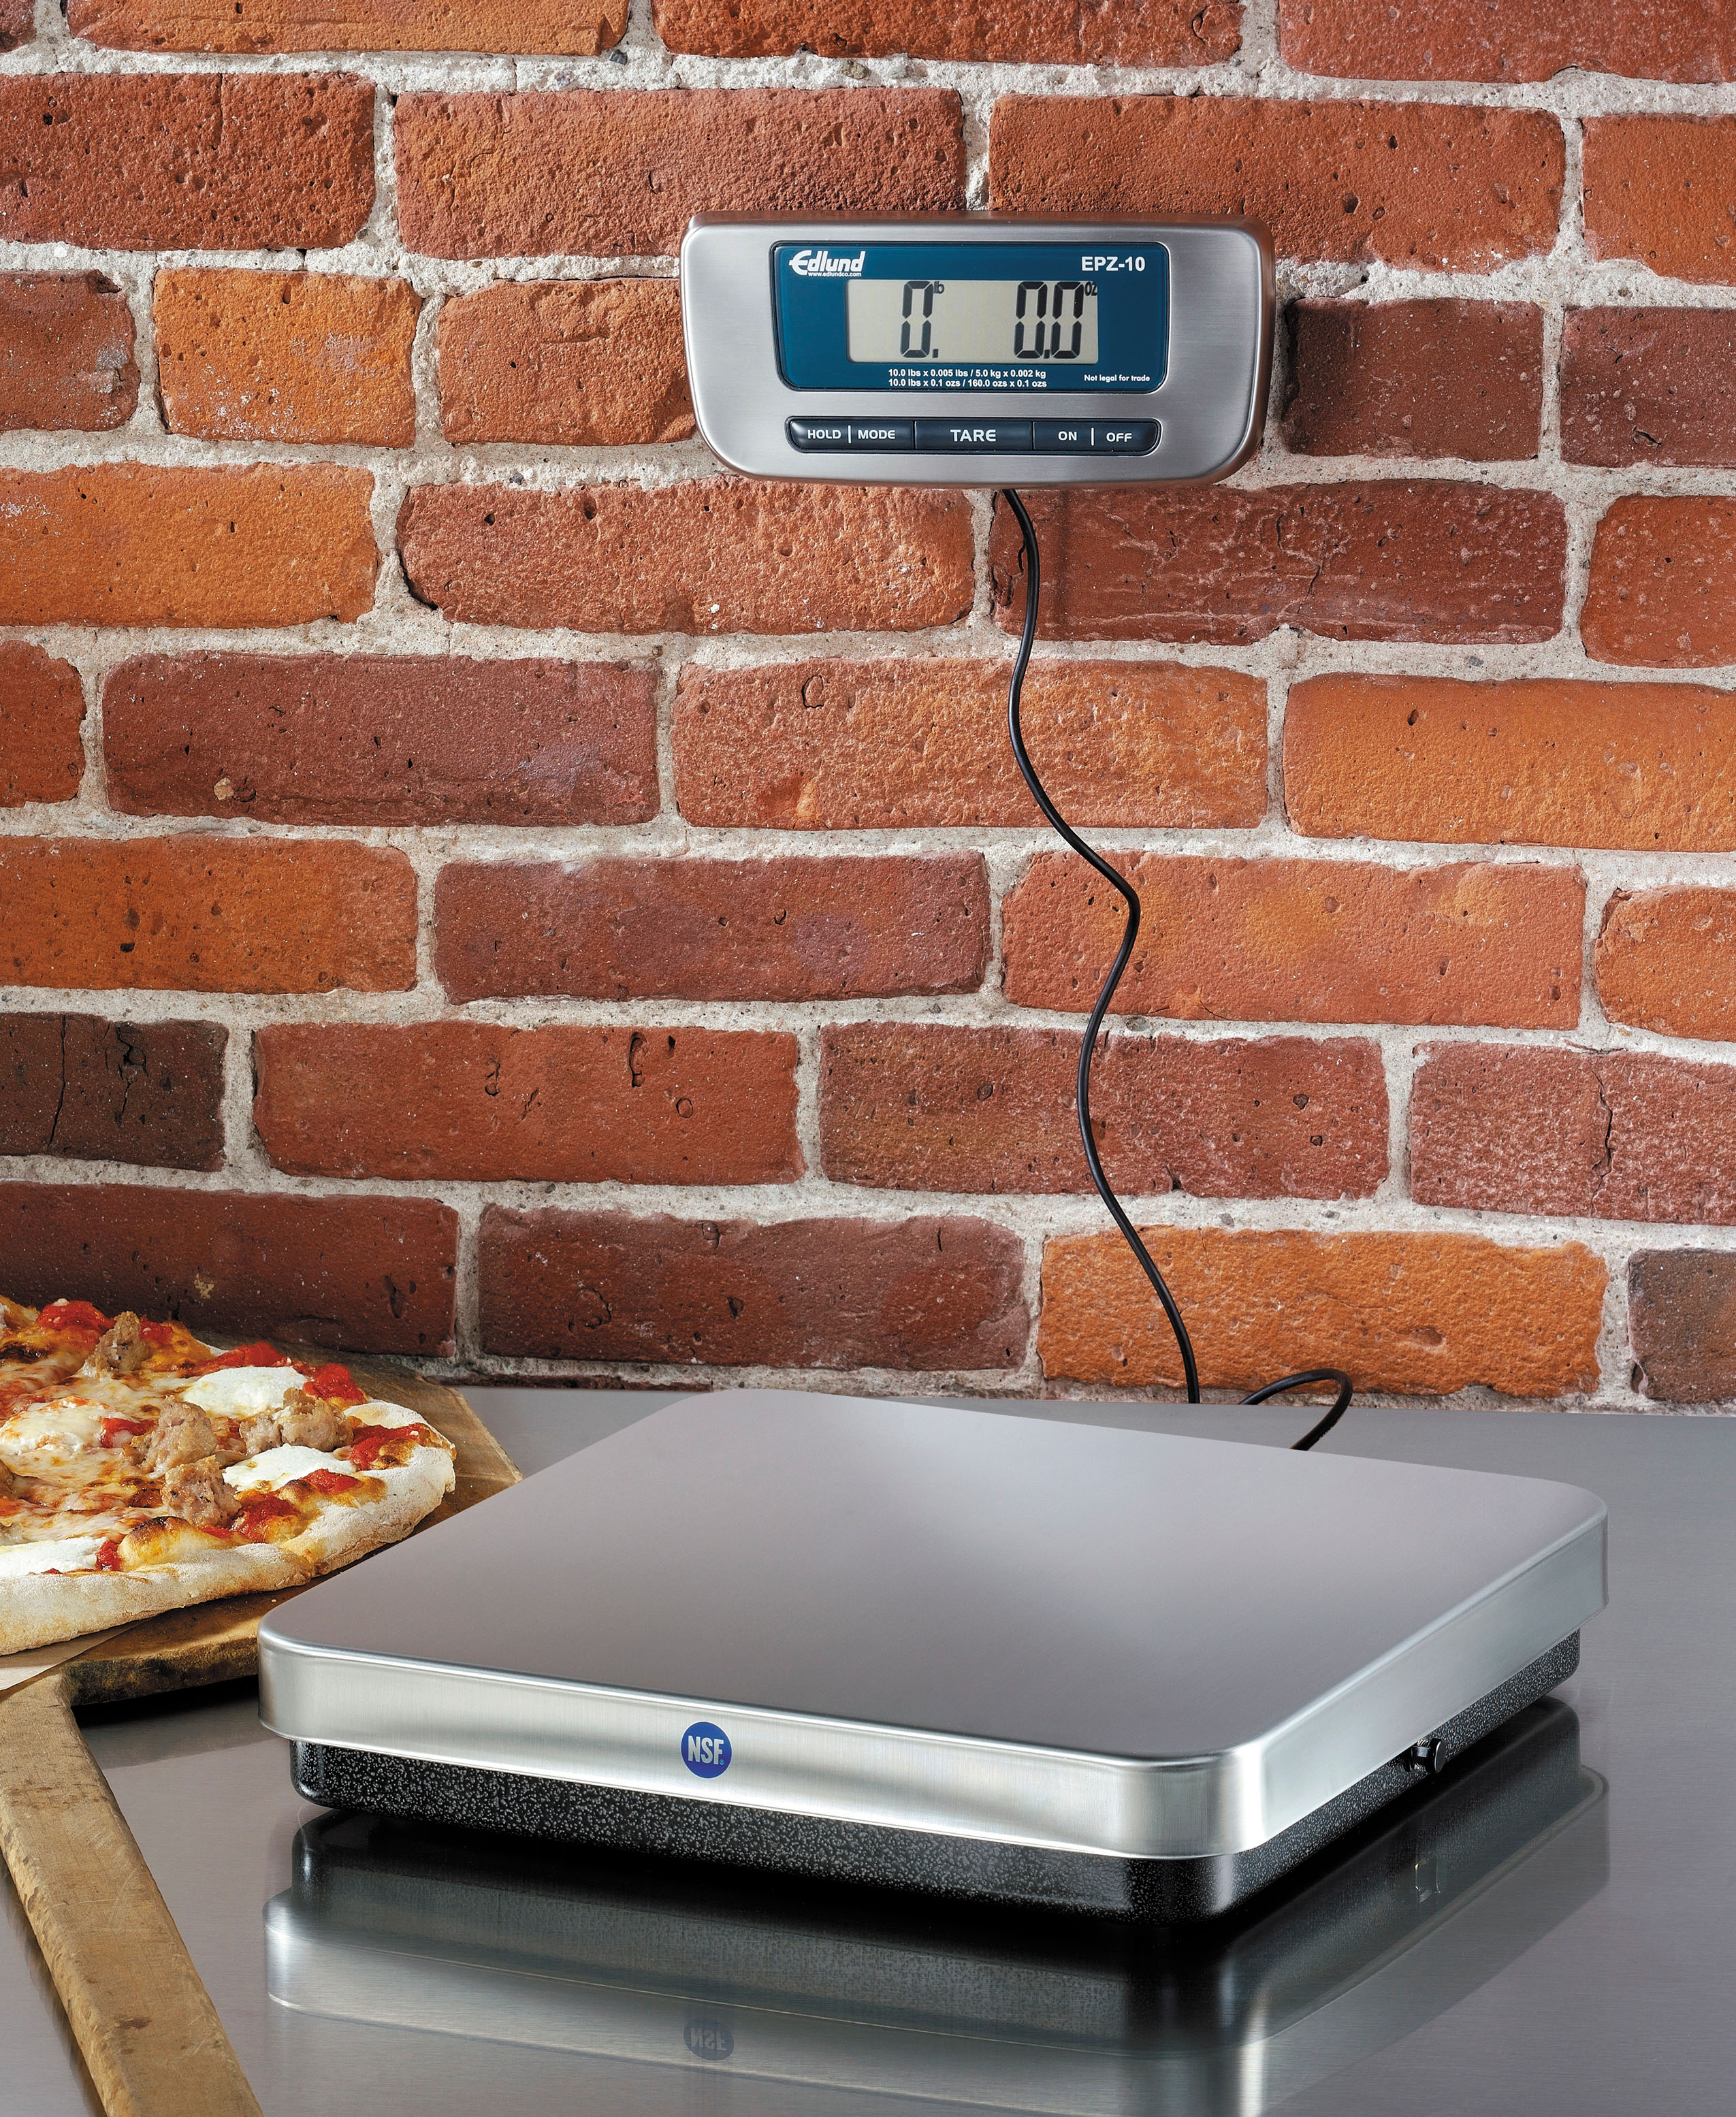 Edlund 20 Lb Digital Pizza Scale W/ Foot Switch Tare